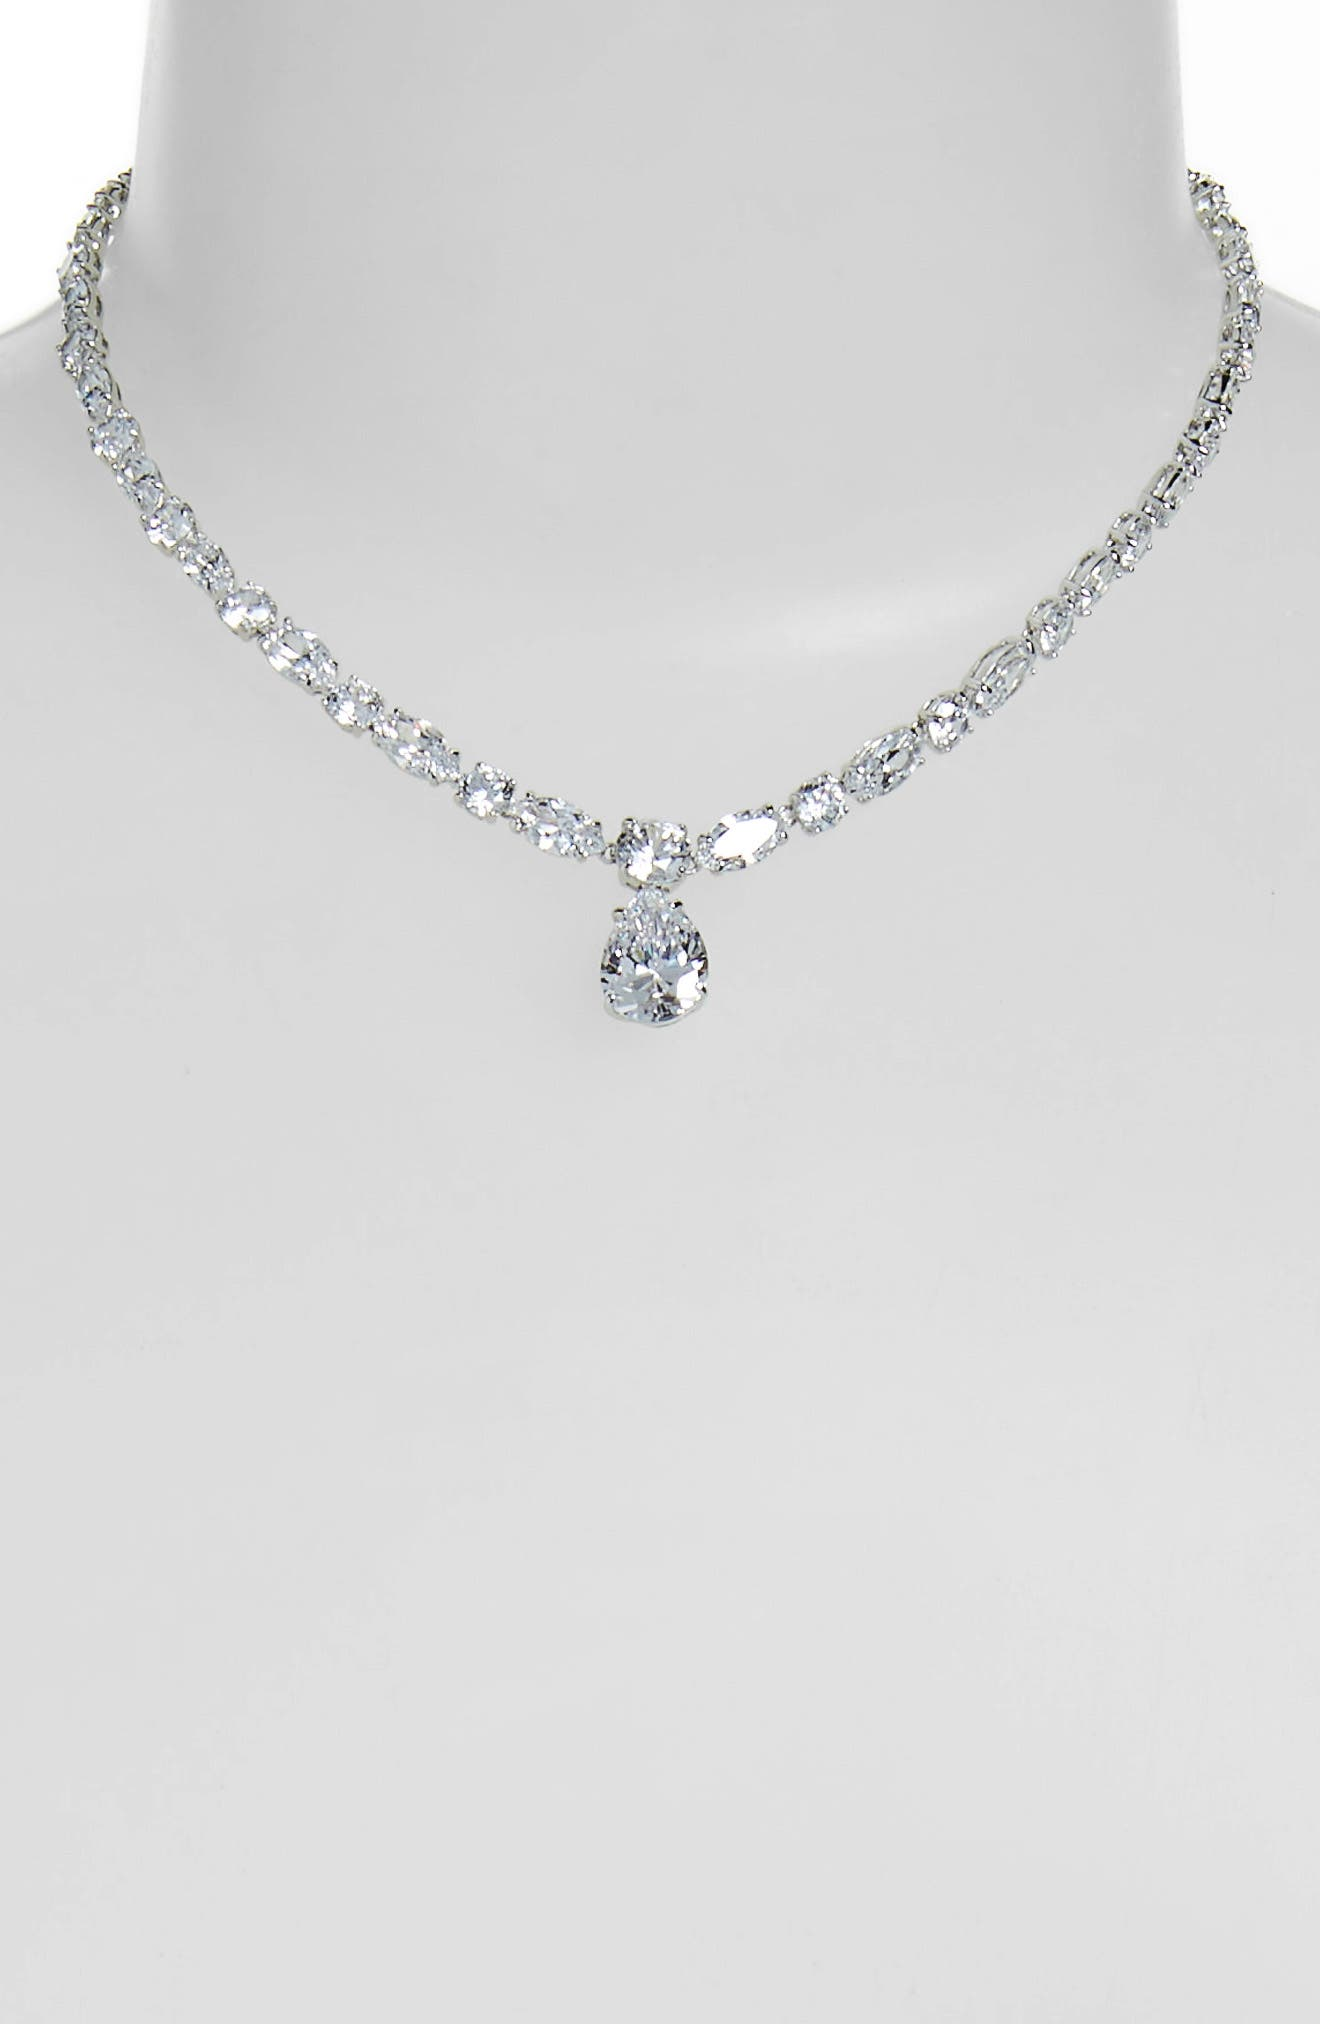 Mixed Cut Cubic Zirconia Riviera Necklace,                             Alternate thumbnail 2, color,                             CLEAR- SILVER